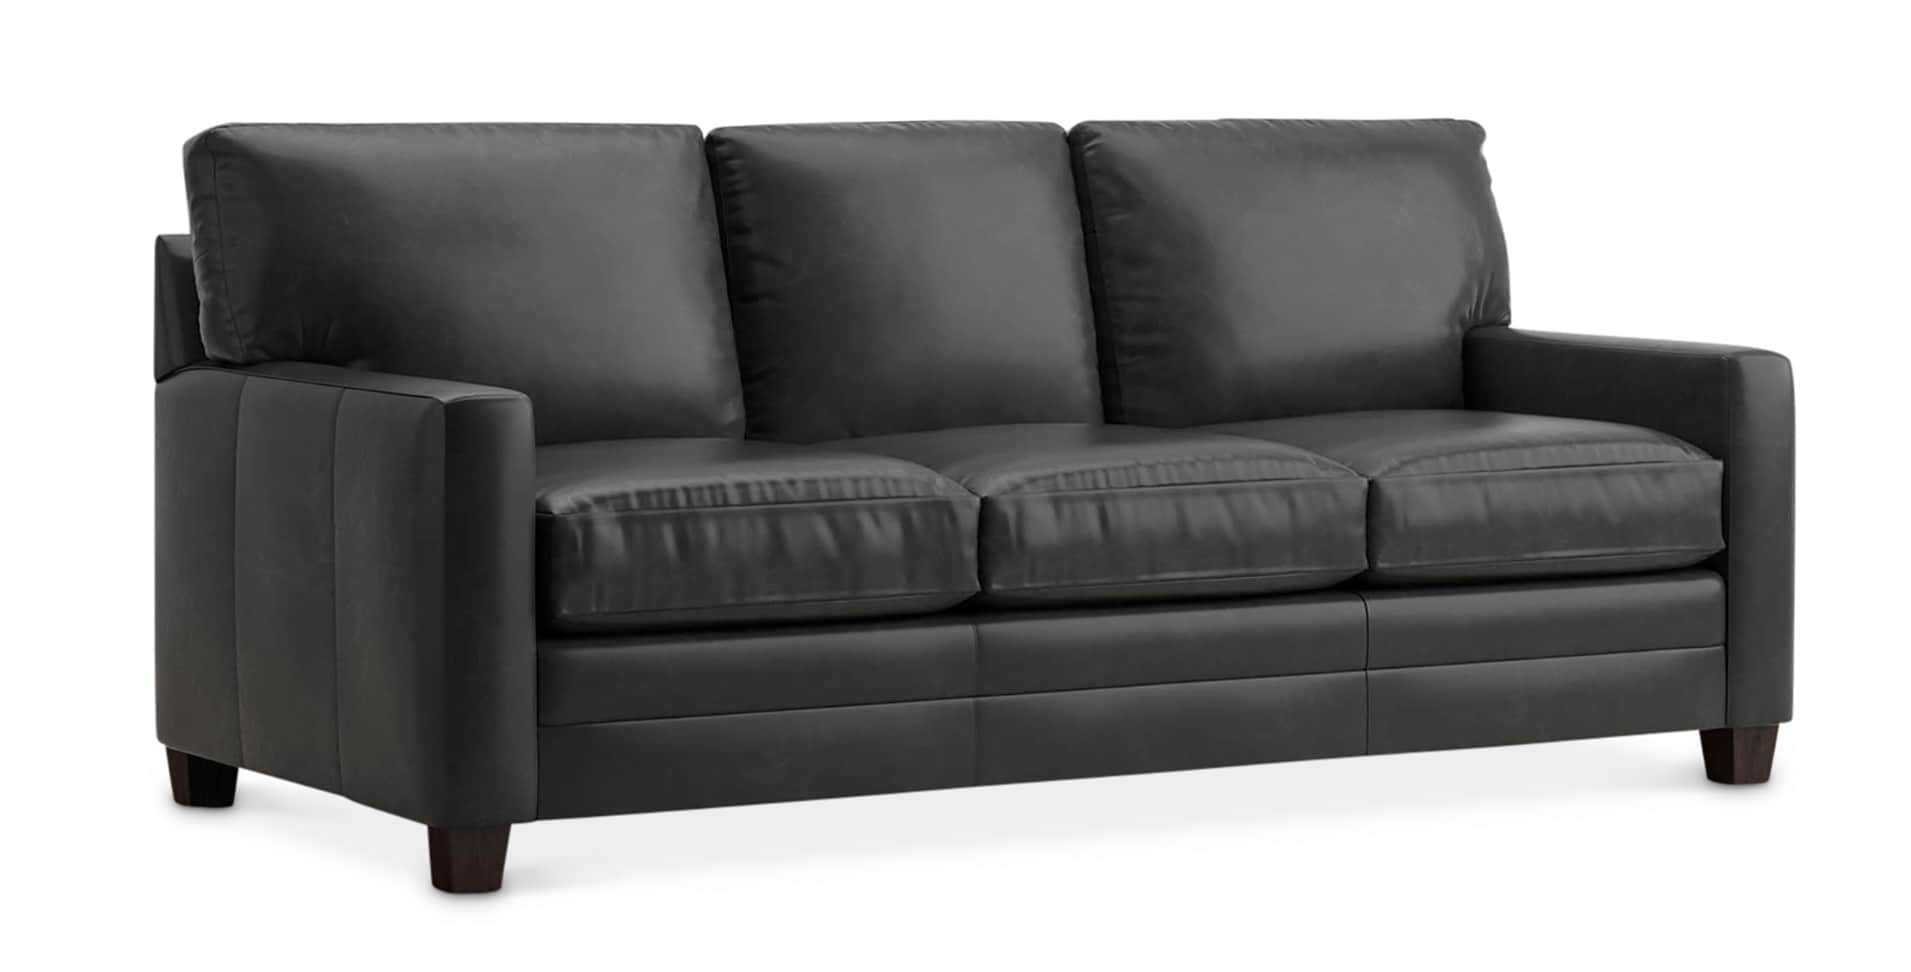 Ladson Queen Sleeper Sofa In Leather American Casual